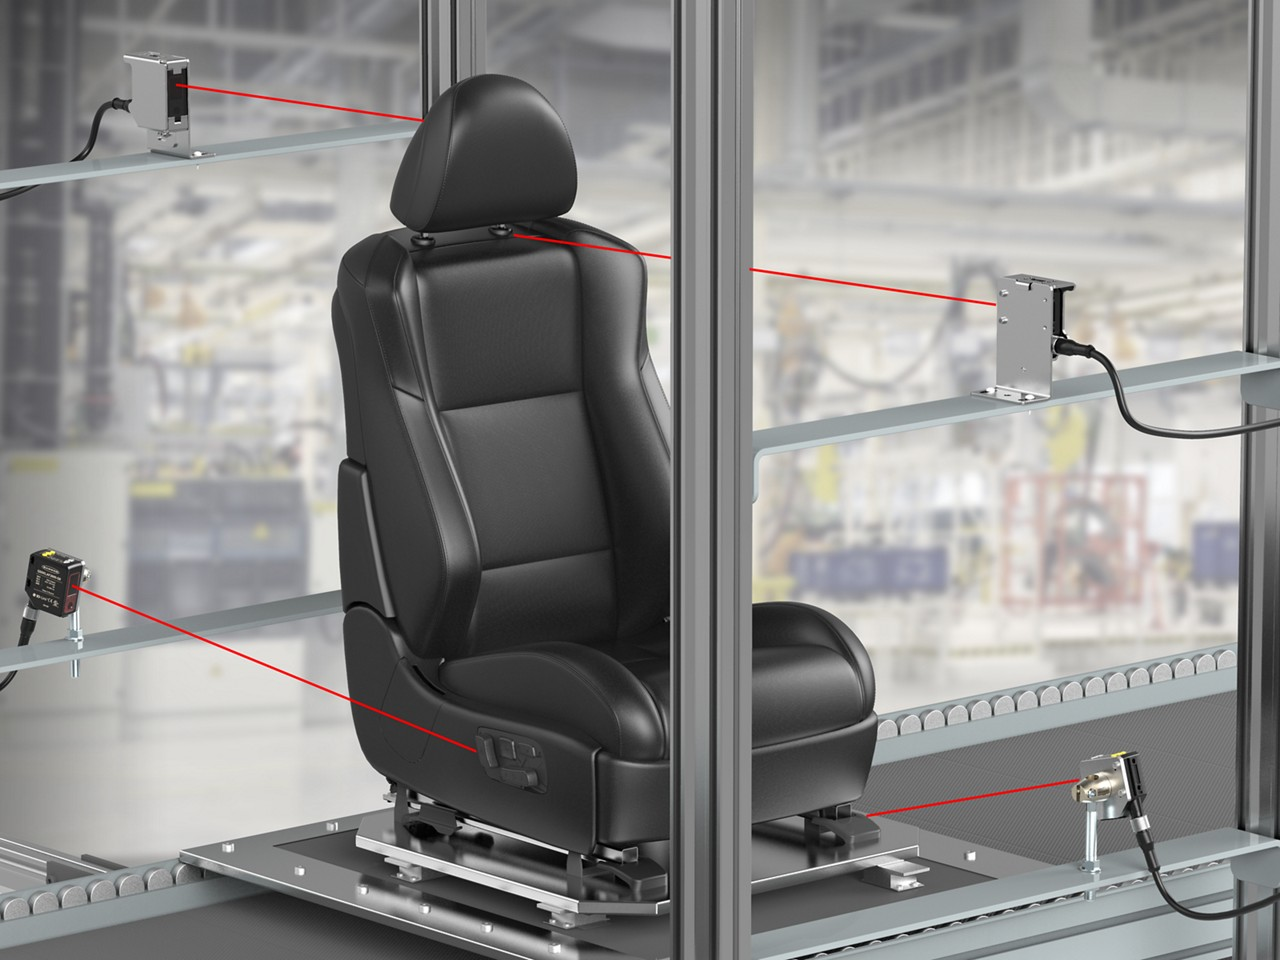 sensors detect dark automotive components during seat inspection